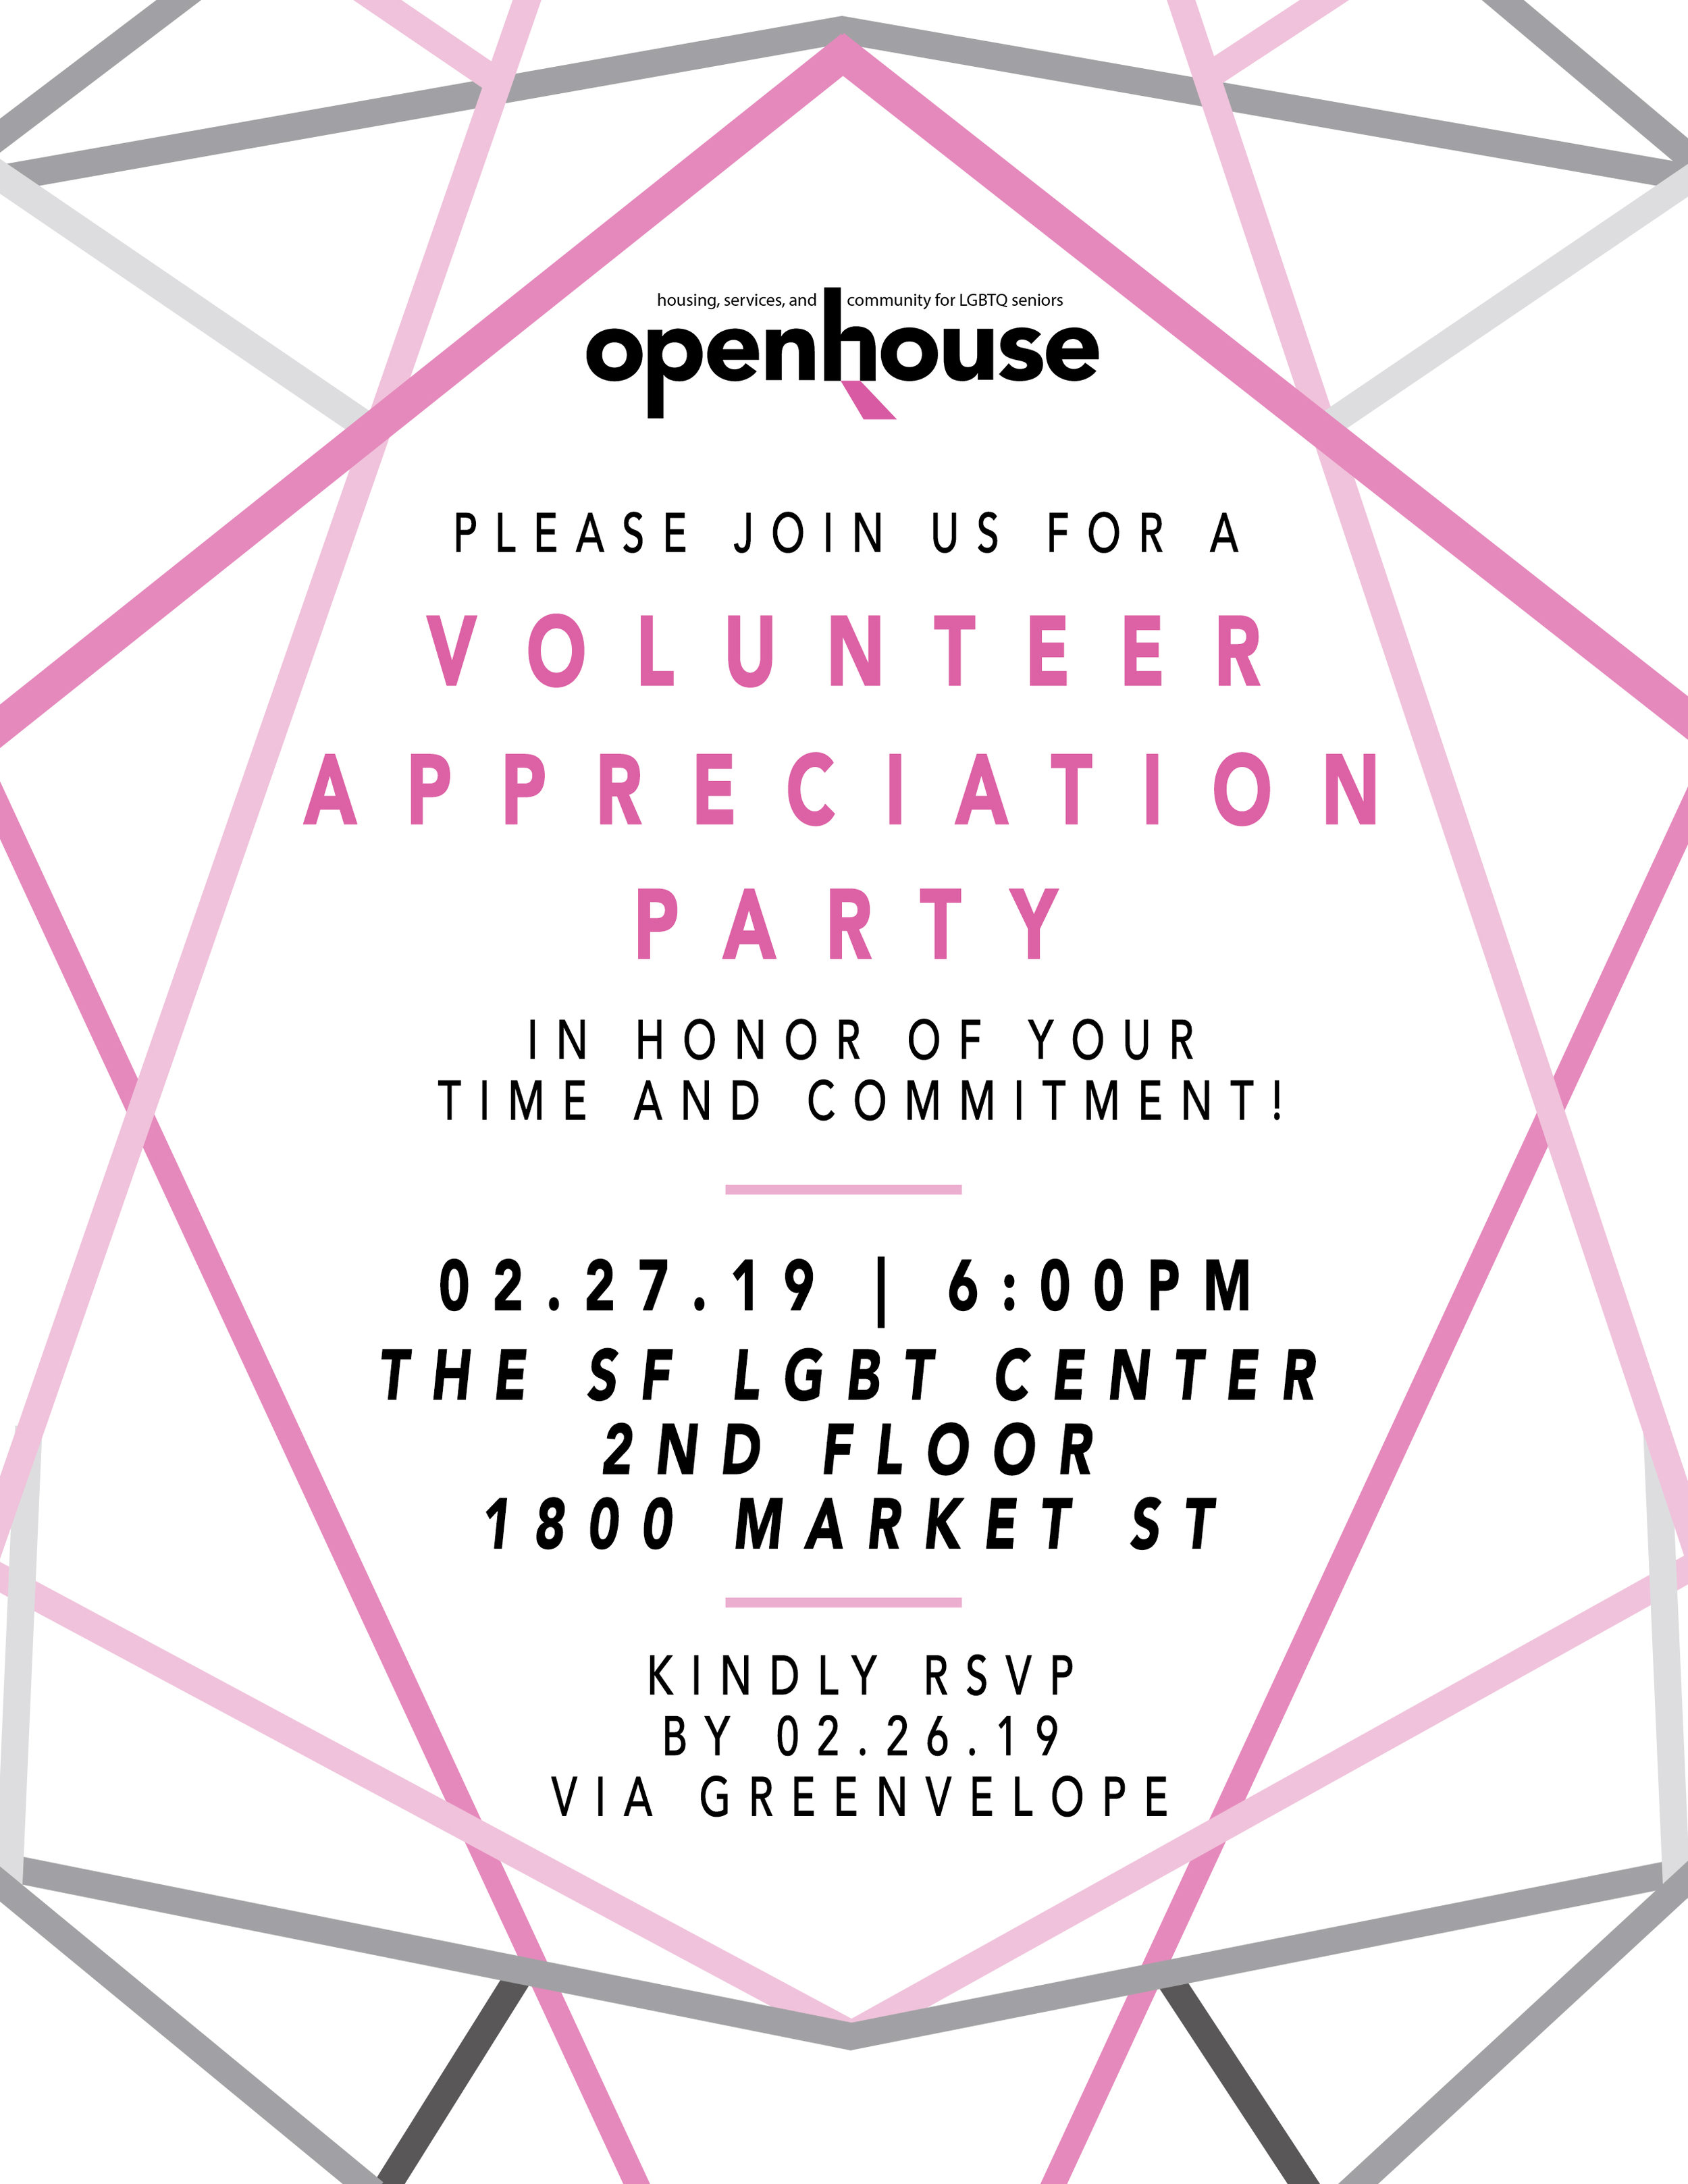 Invitation I designed for the first Volunteer Appreciation Party at Openhouse.